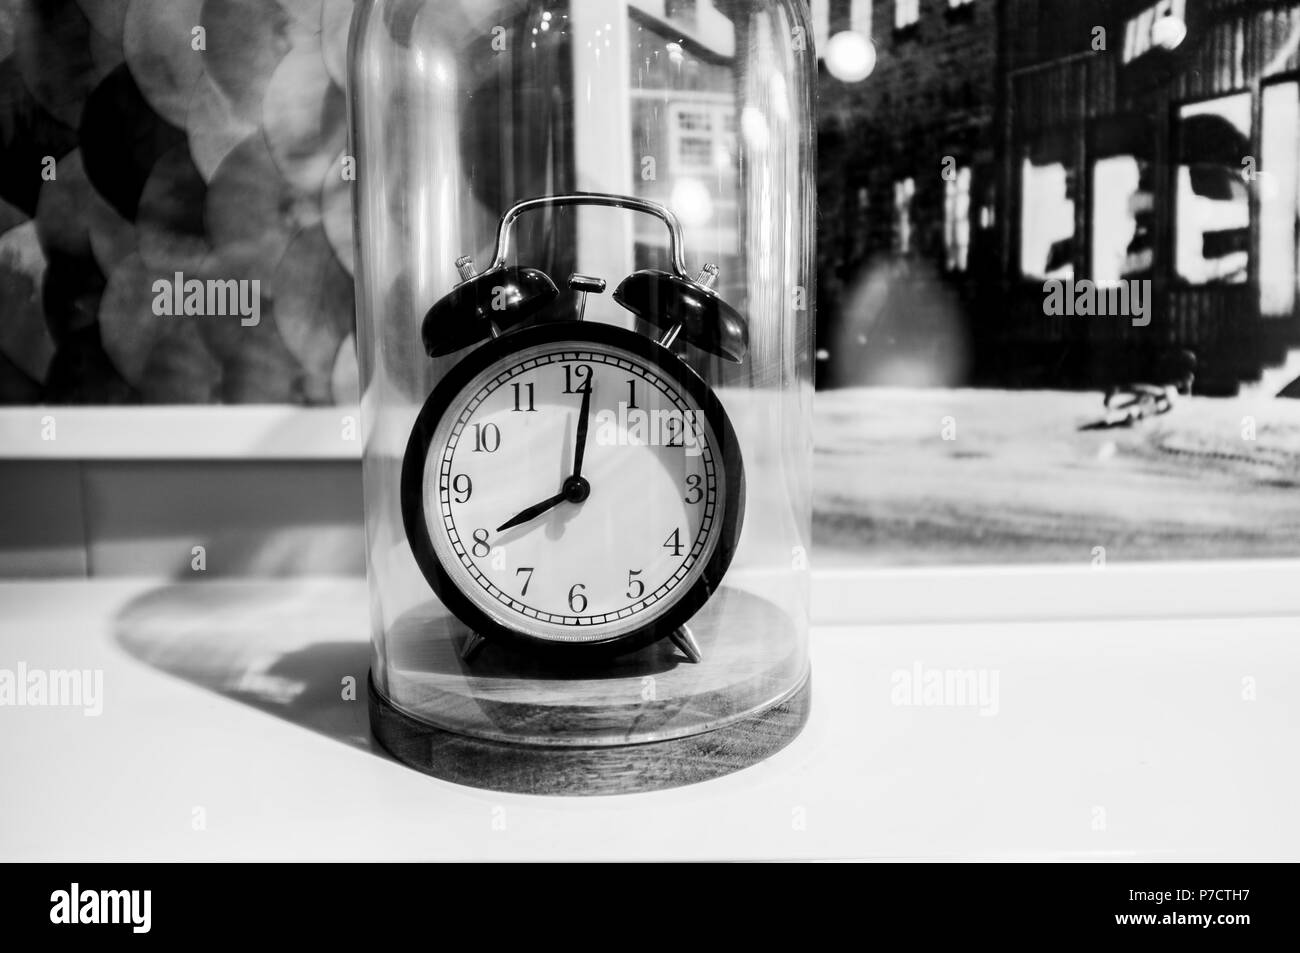 Retro alarm clock showing 8 O'clock on blurred background in black and white - Stock Image